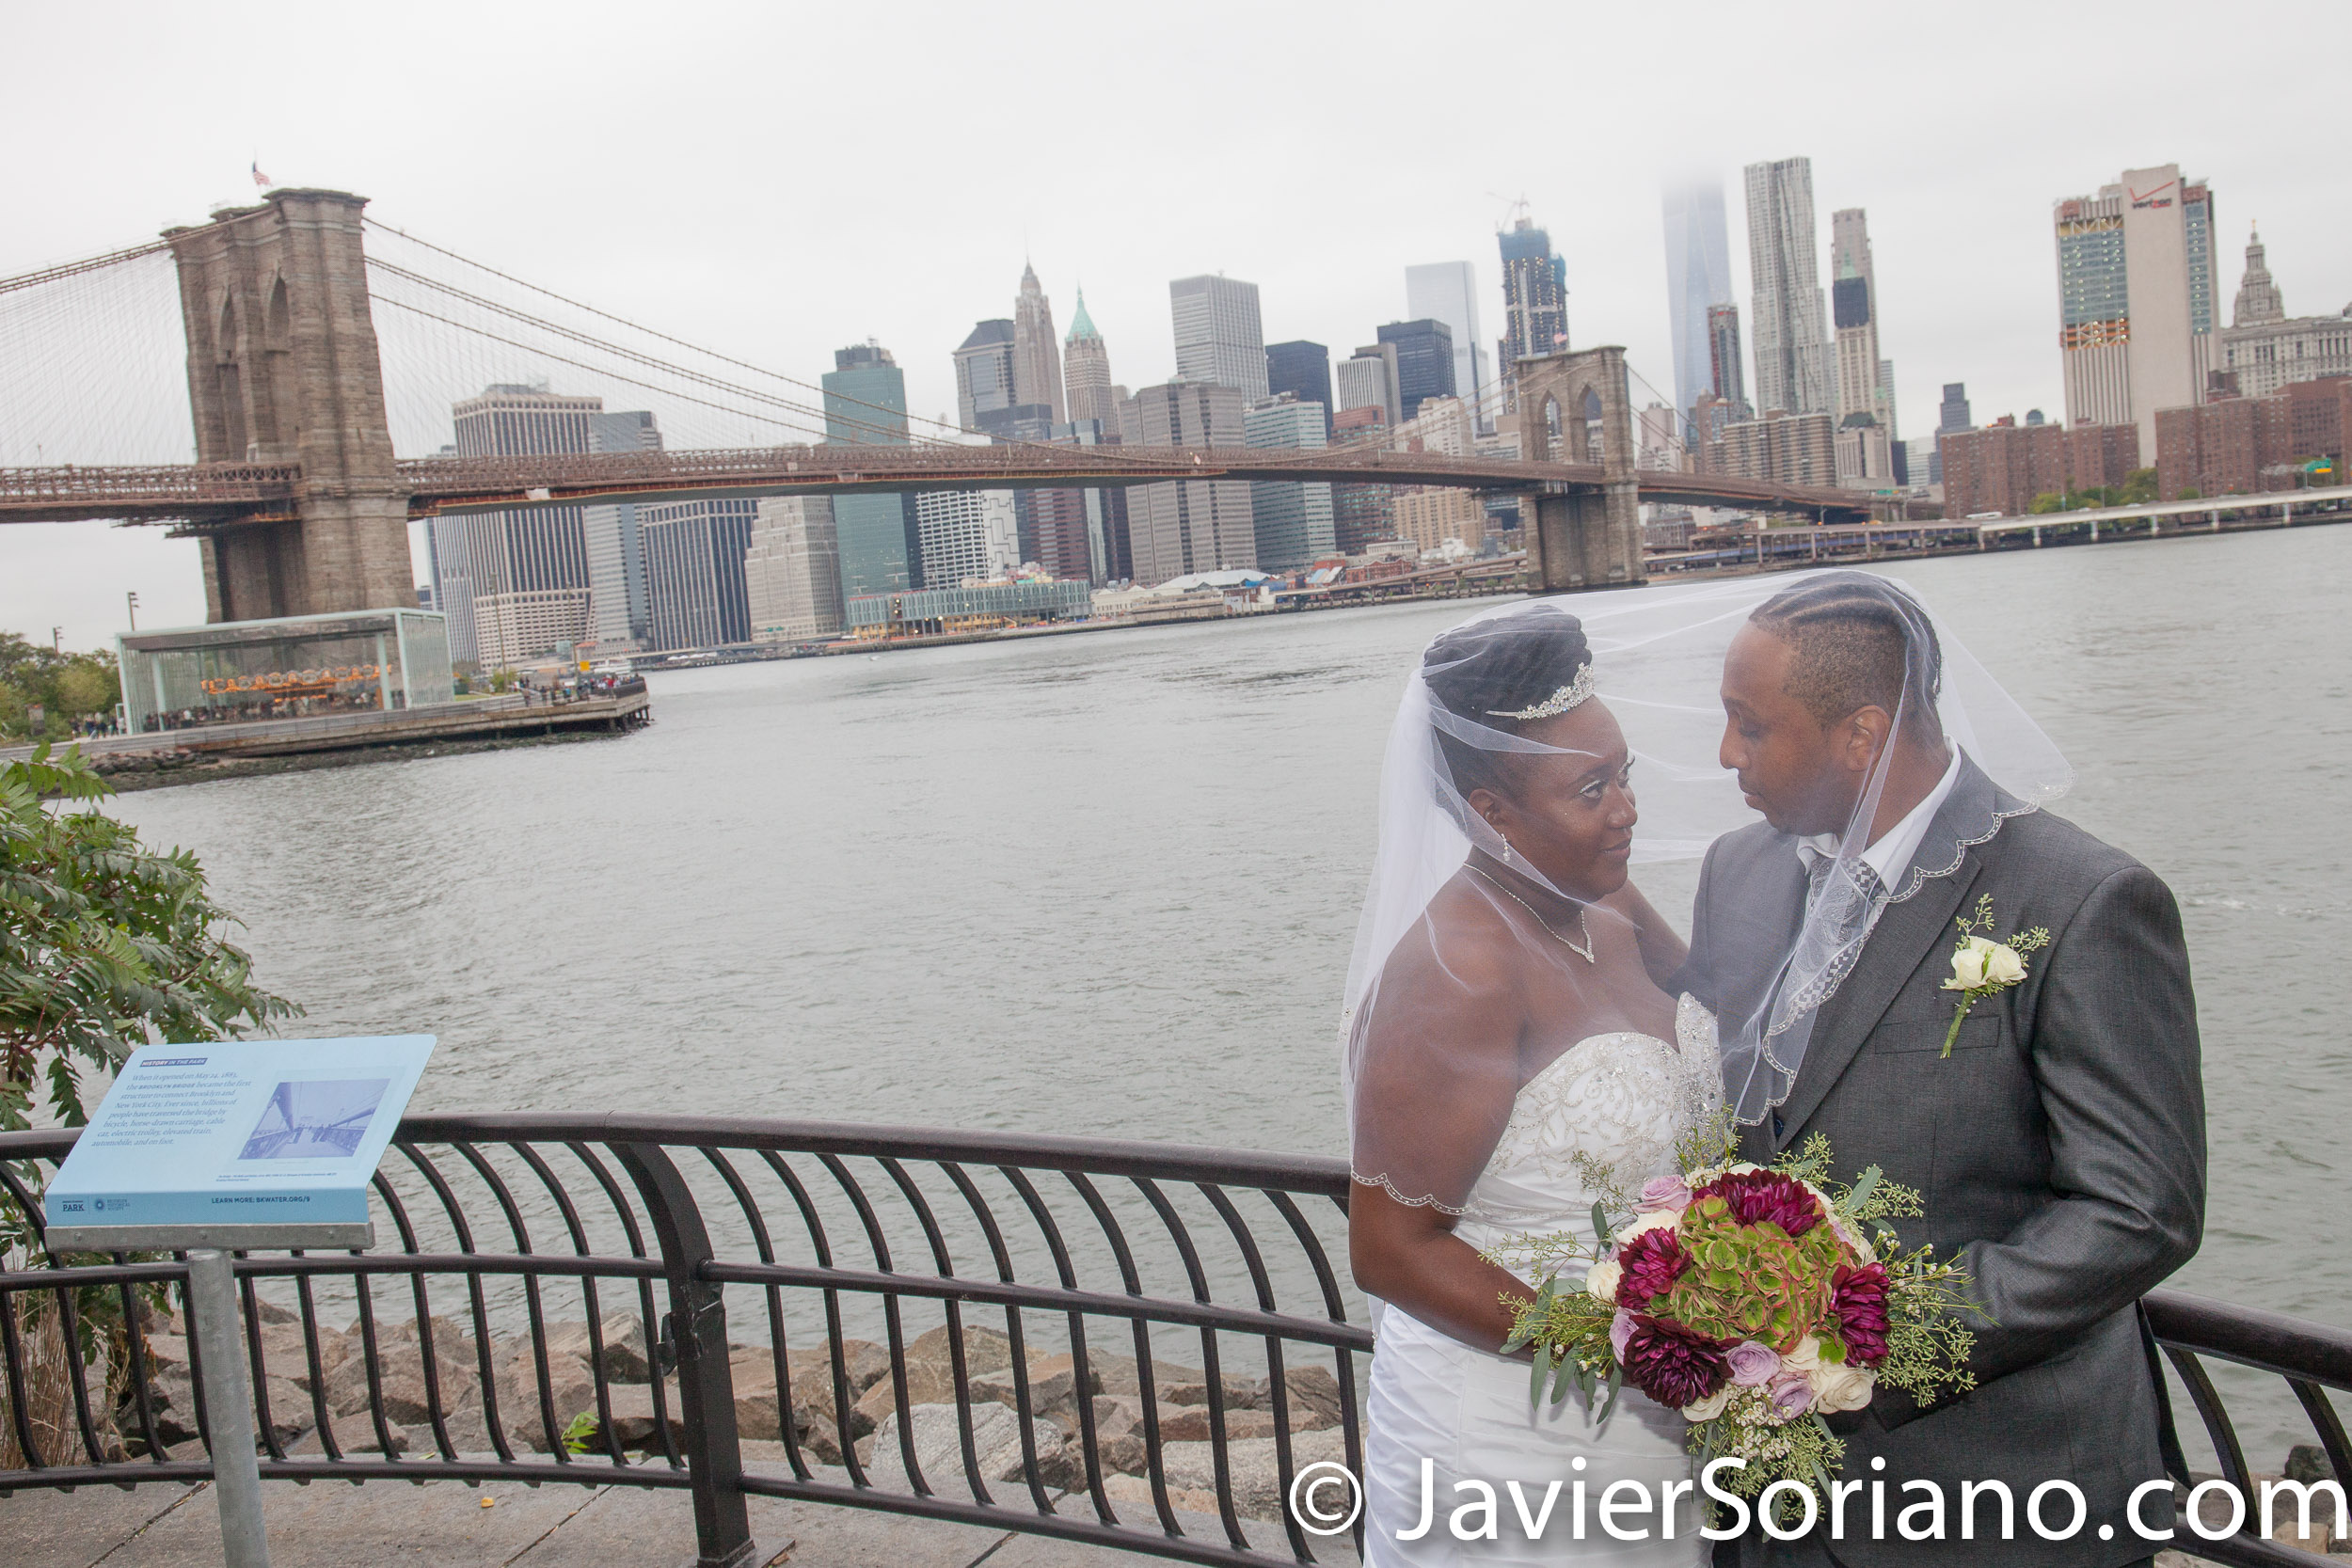 Brooklyn Bridge Park, NYC – The Brooklyn Bridge and skyscrapers in the Lower Manhattan. Do you need wedding photos or video? Send me a message. El Puente de Brooklyn y rascacielos en el bajo Manhattan. ¿Necesitas fotos o video de bodas? Envíame un mensaje. Photo by Javier Soriano/www.JavierSoriano.com